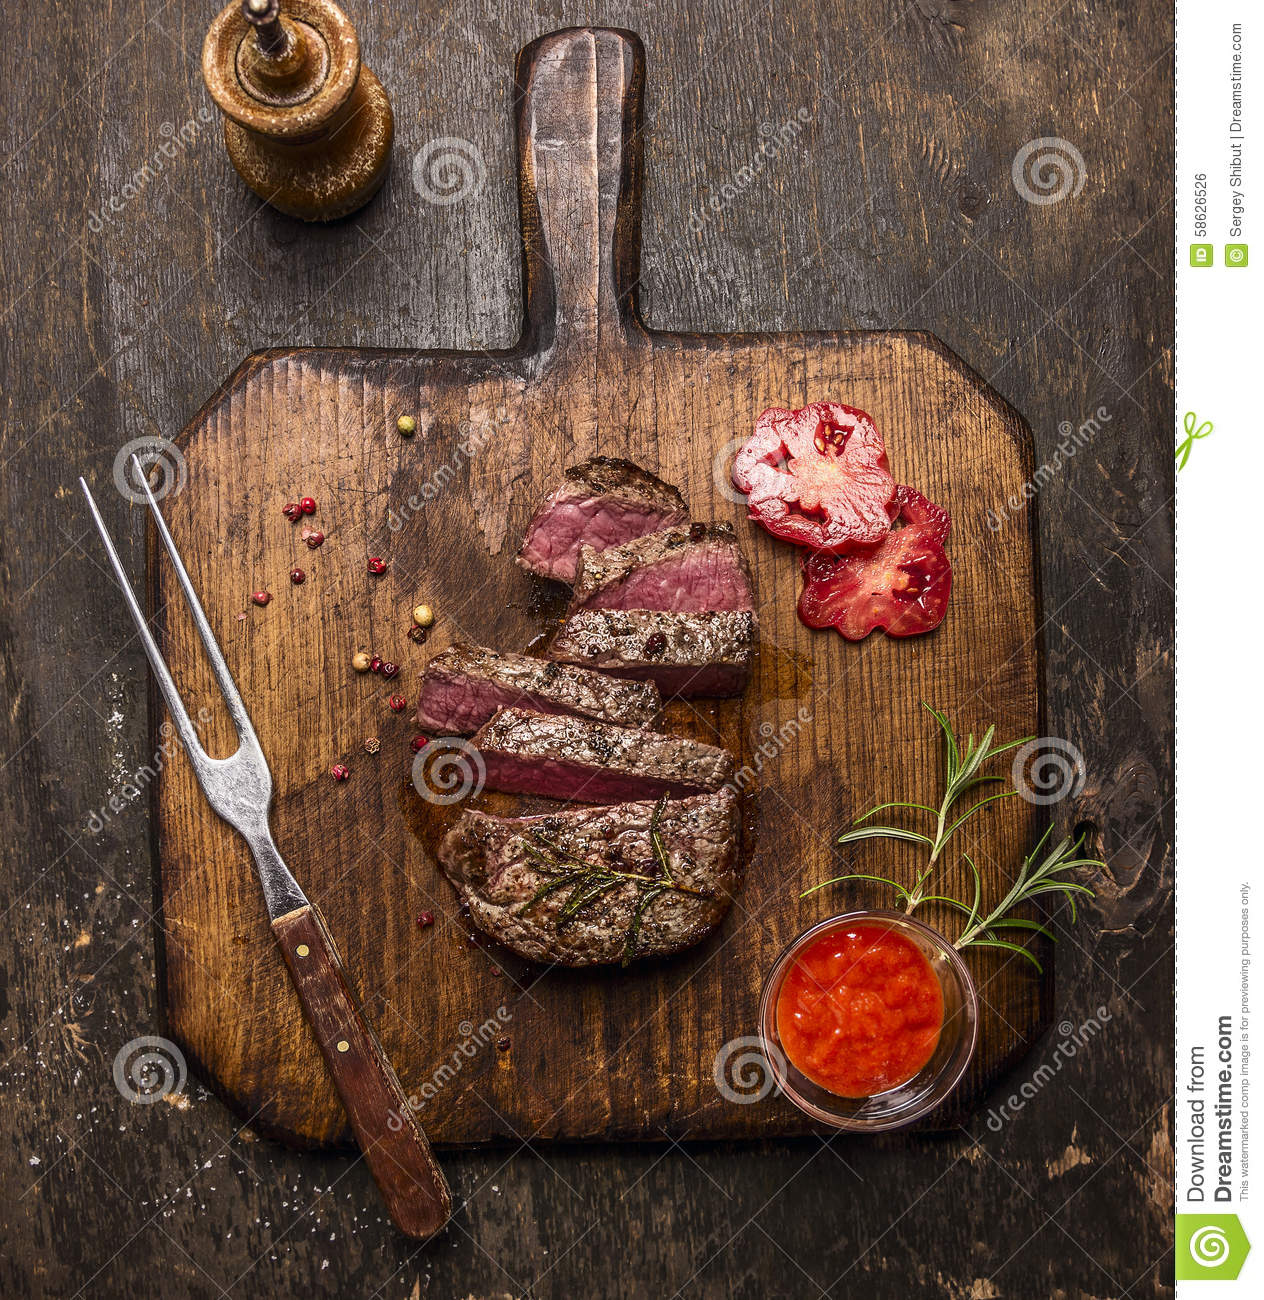 Roasted ribeye steak sliced ​​on a cutting board with a fork, red sauce, peppers and tomatoes on rustic wooden background,